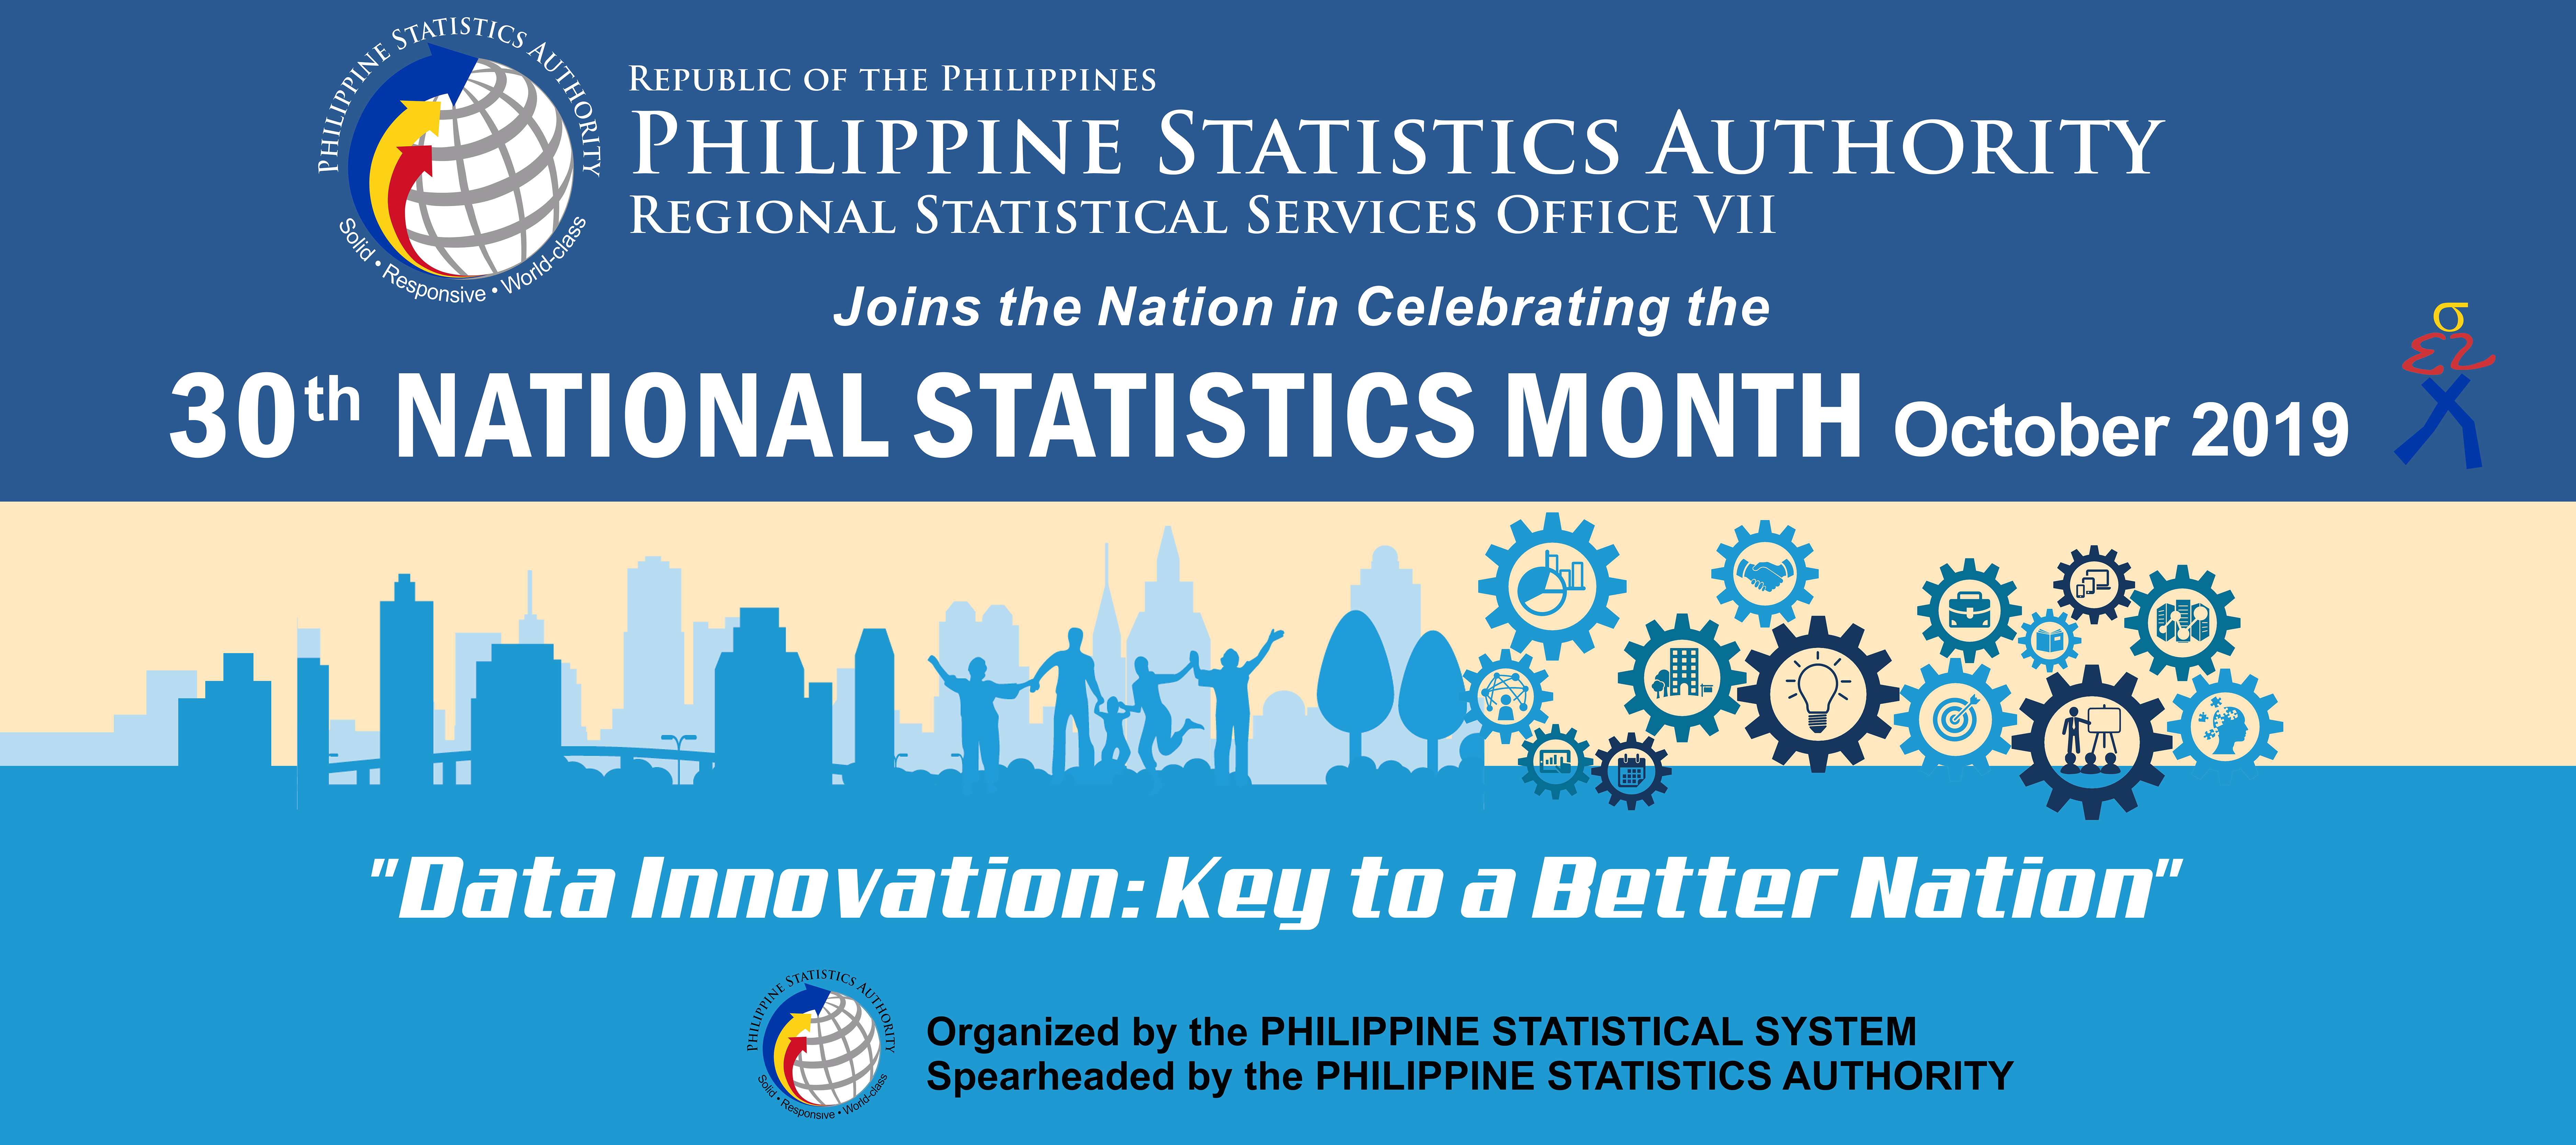 30th National Statistics Month